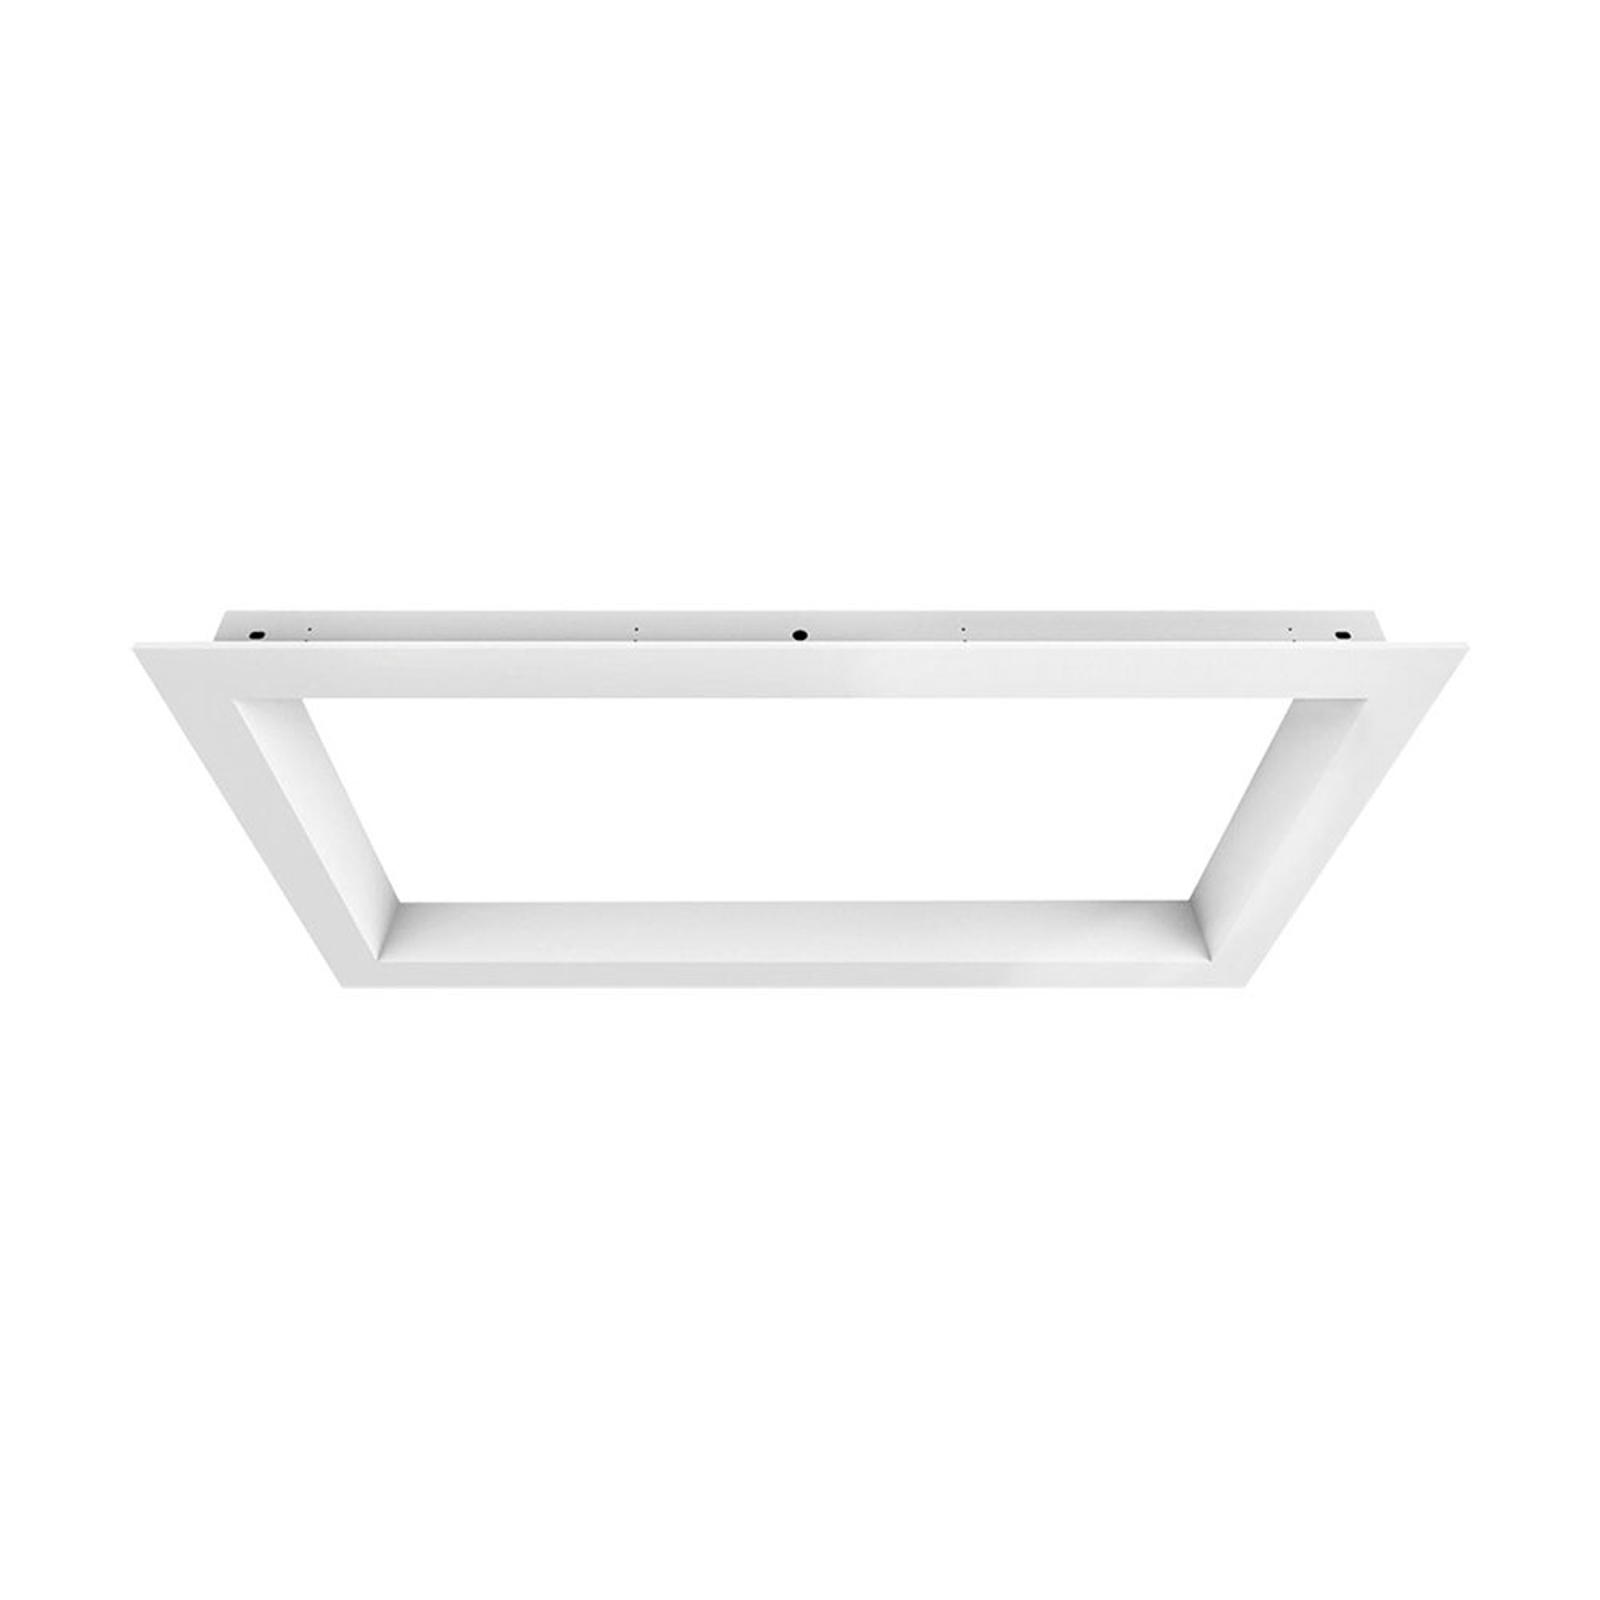 Einbaurahmen LED-Panel Sky Window 120 x 60cm